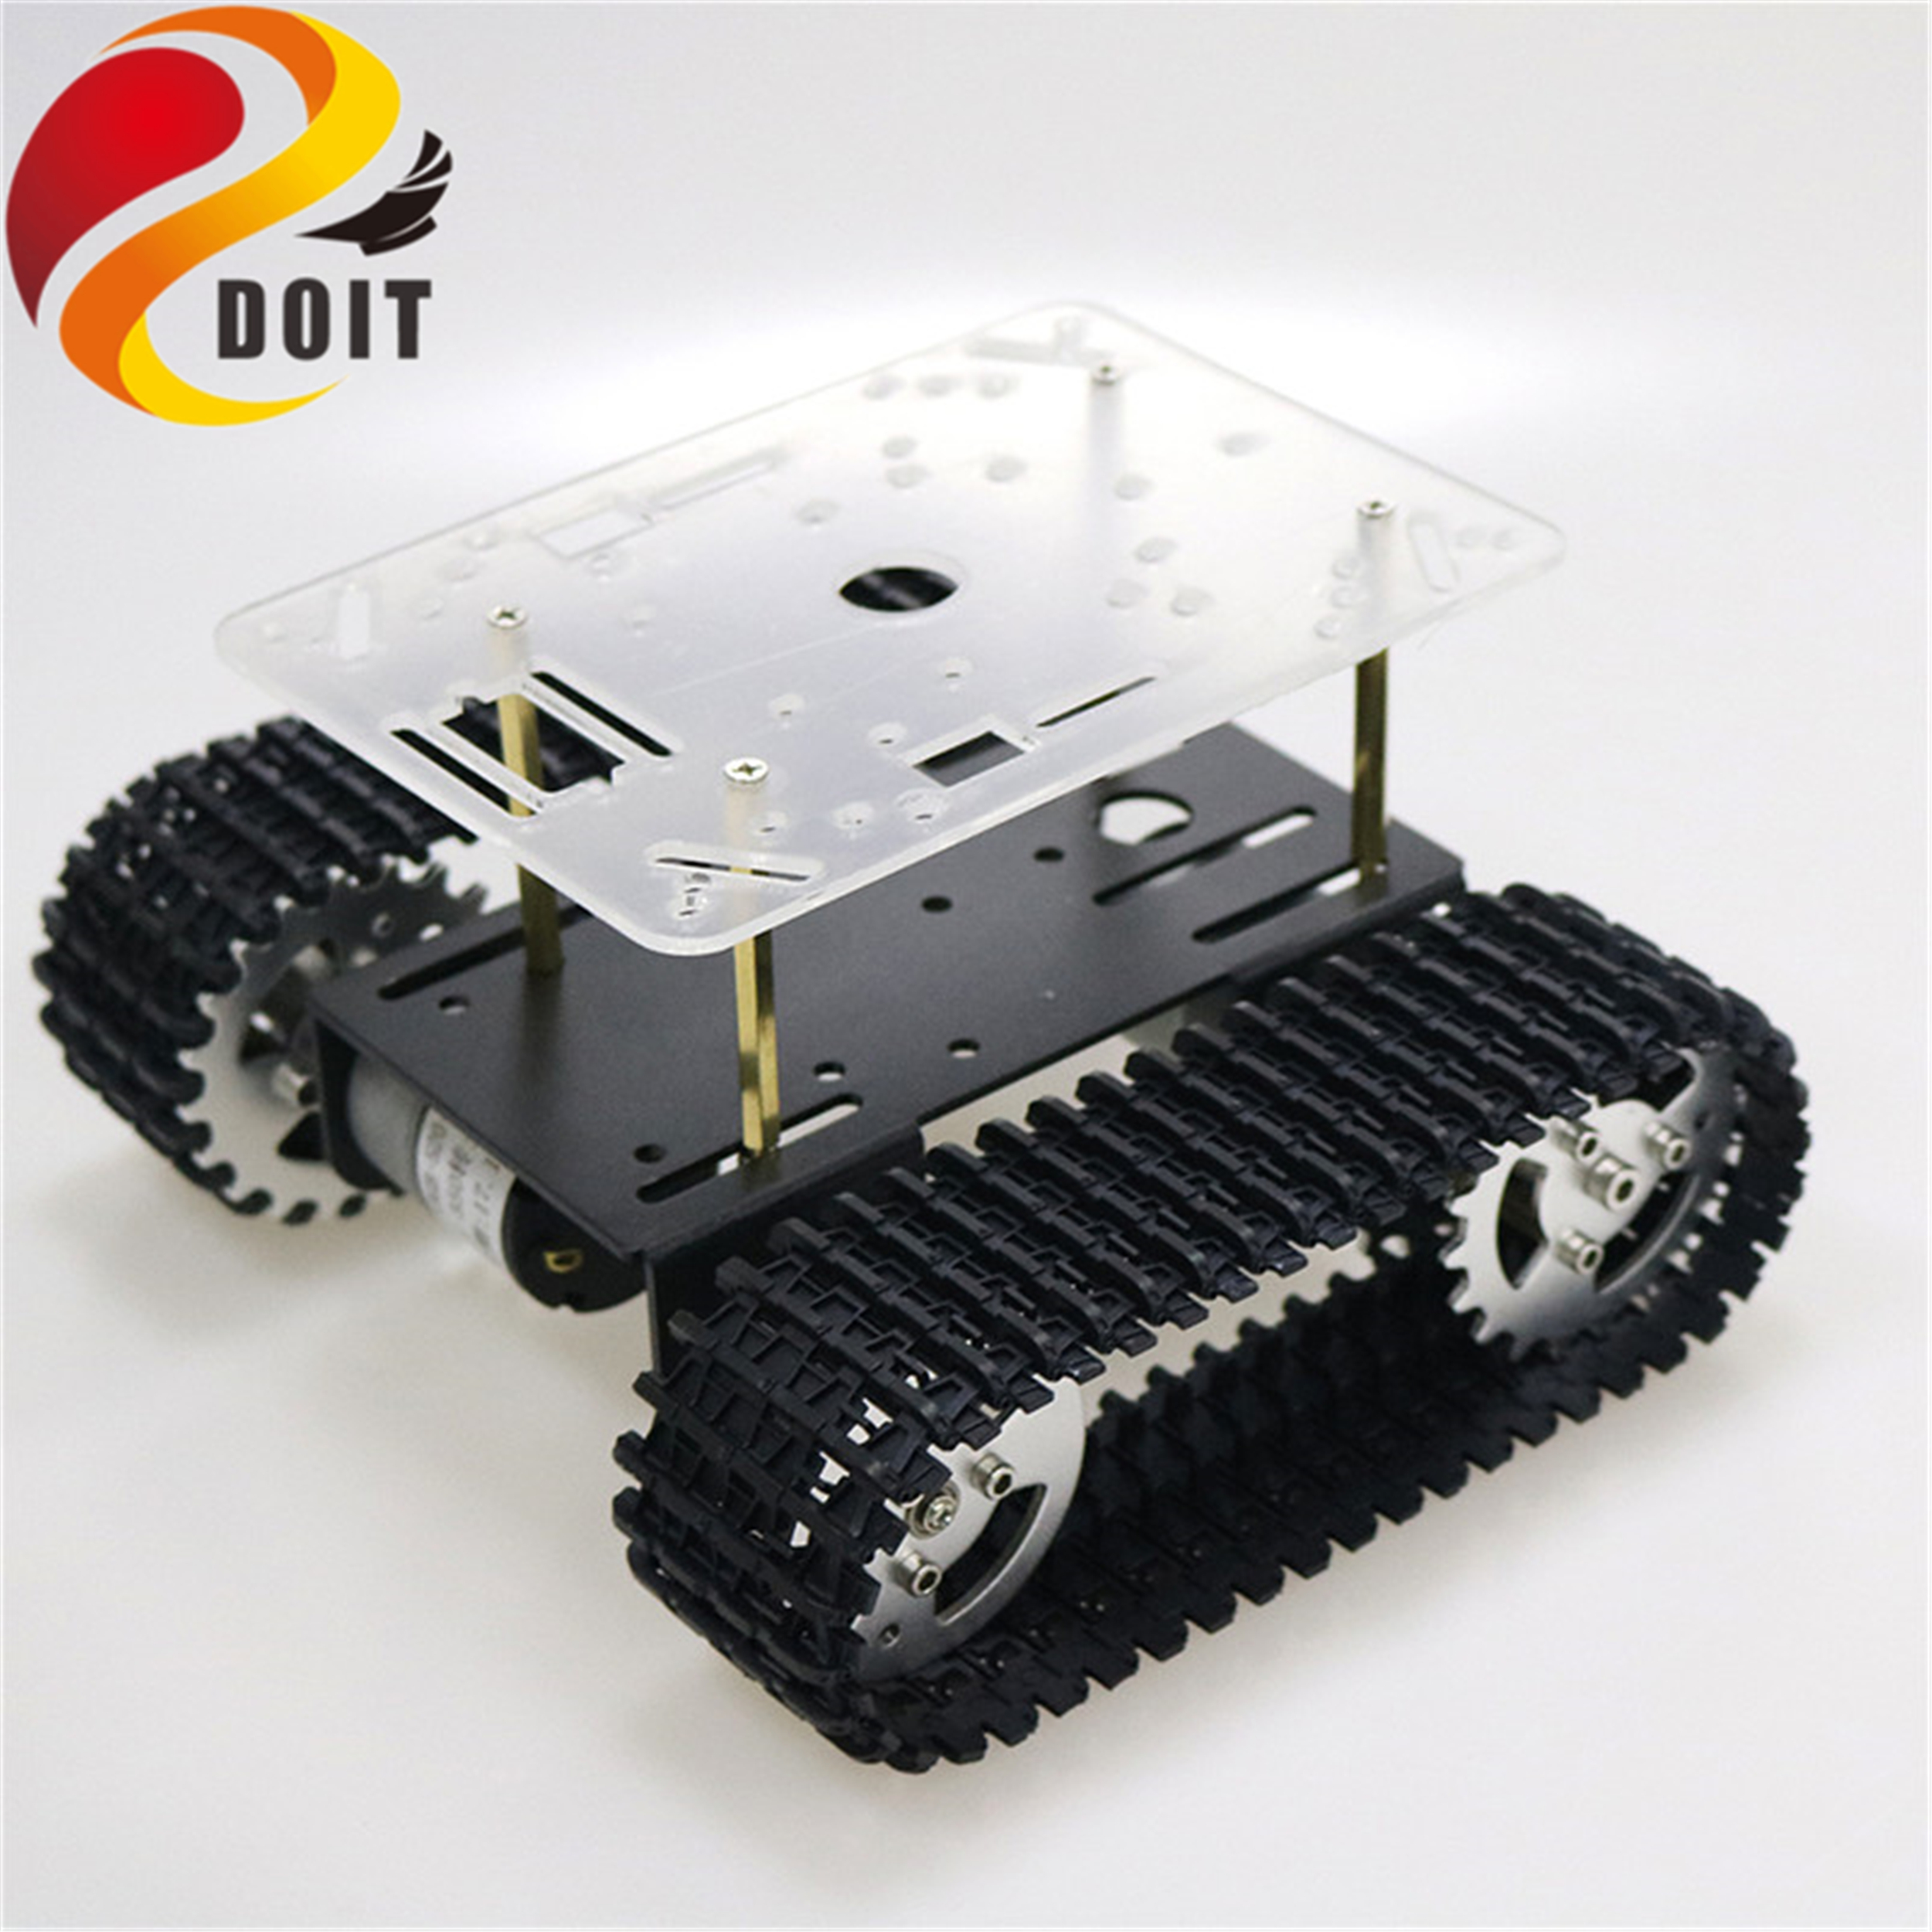 Robot Tank Chassis Suspension System Tracked Vehicle for Arduino Robotics DIY